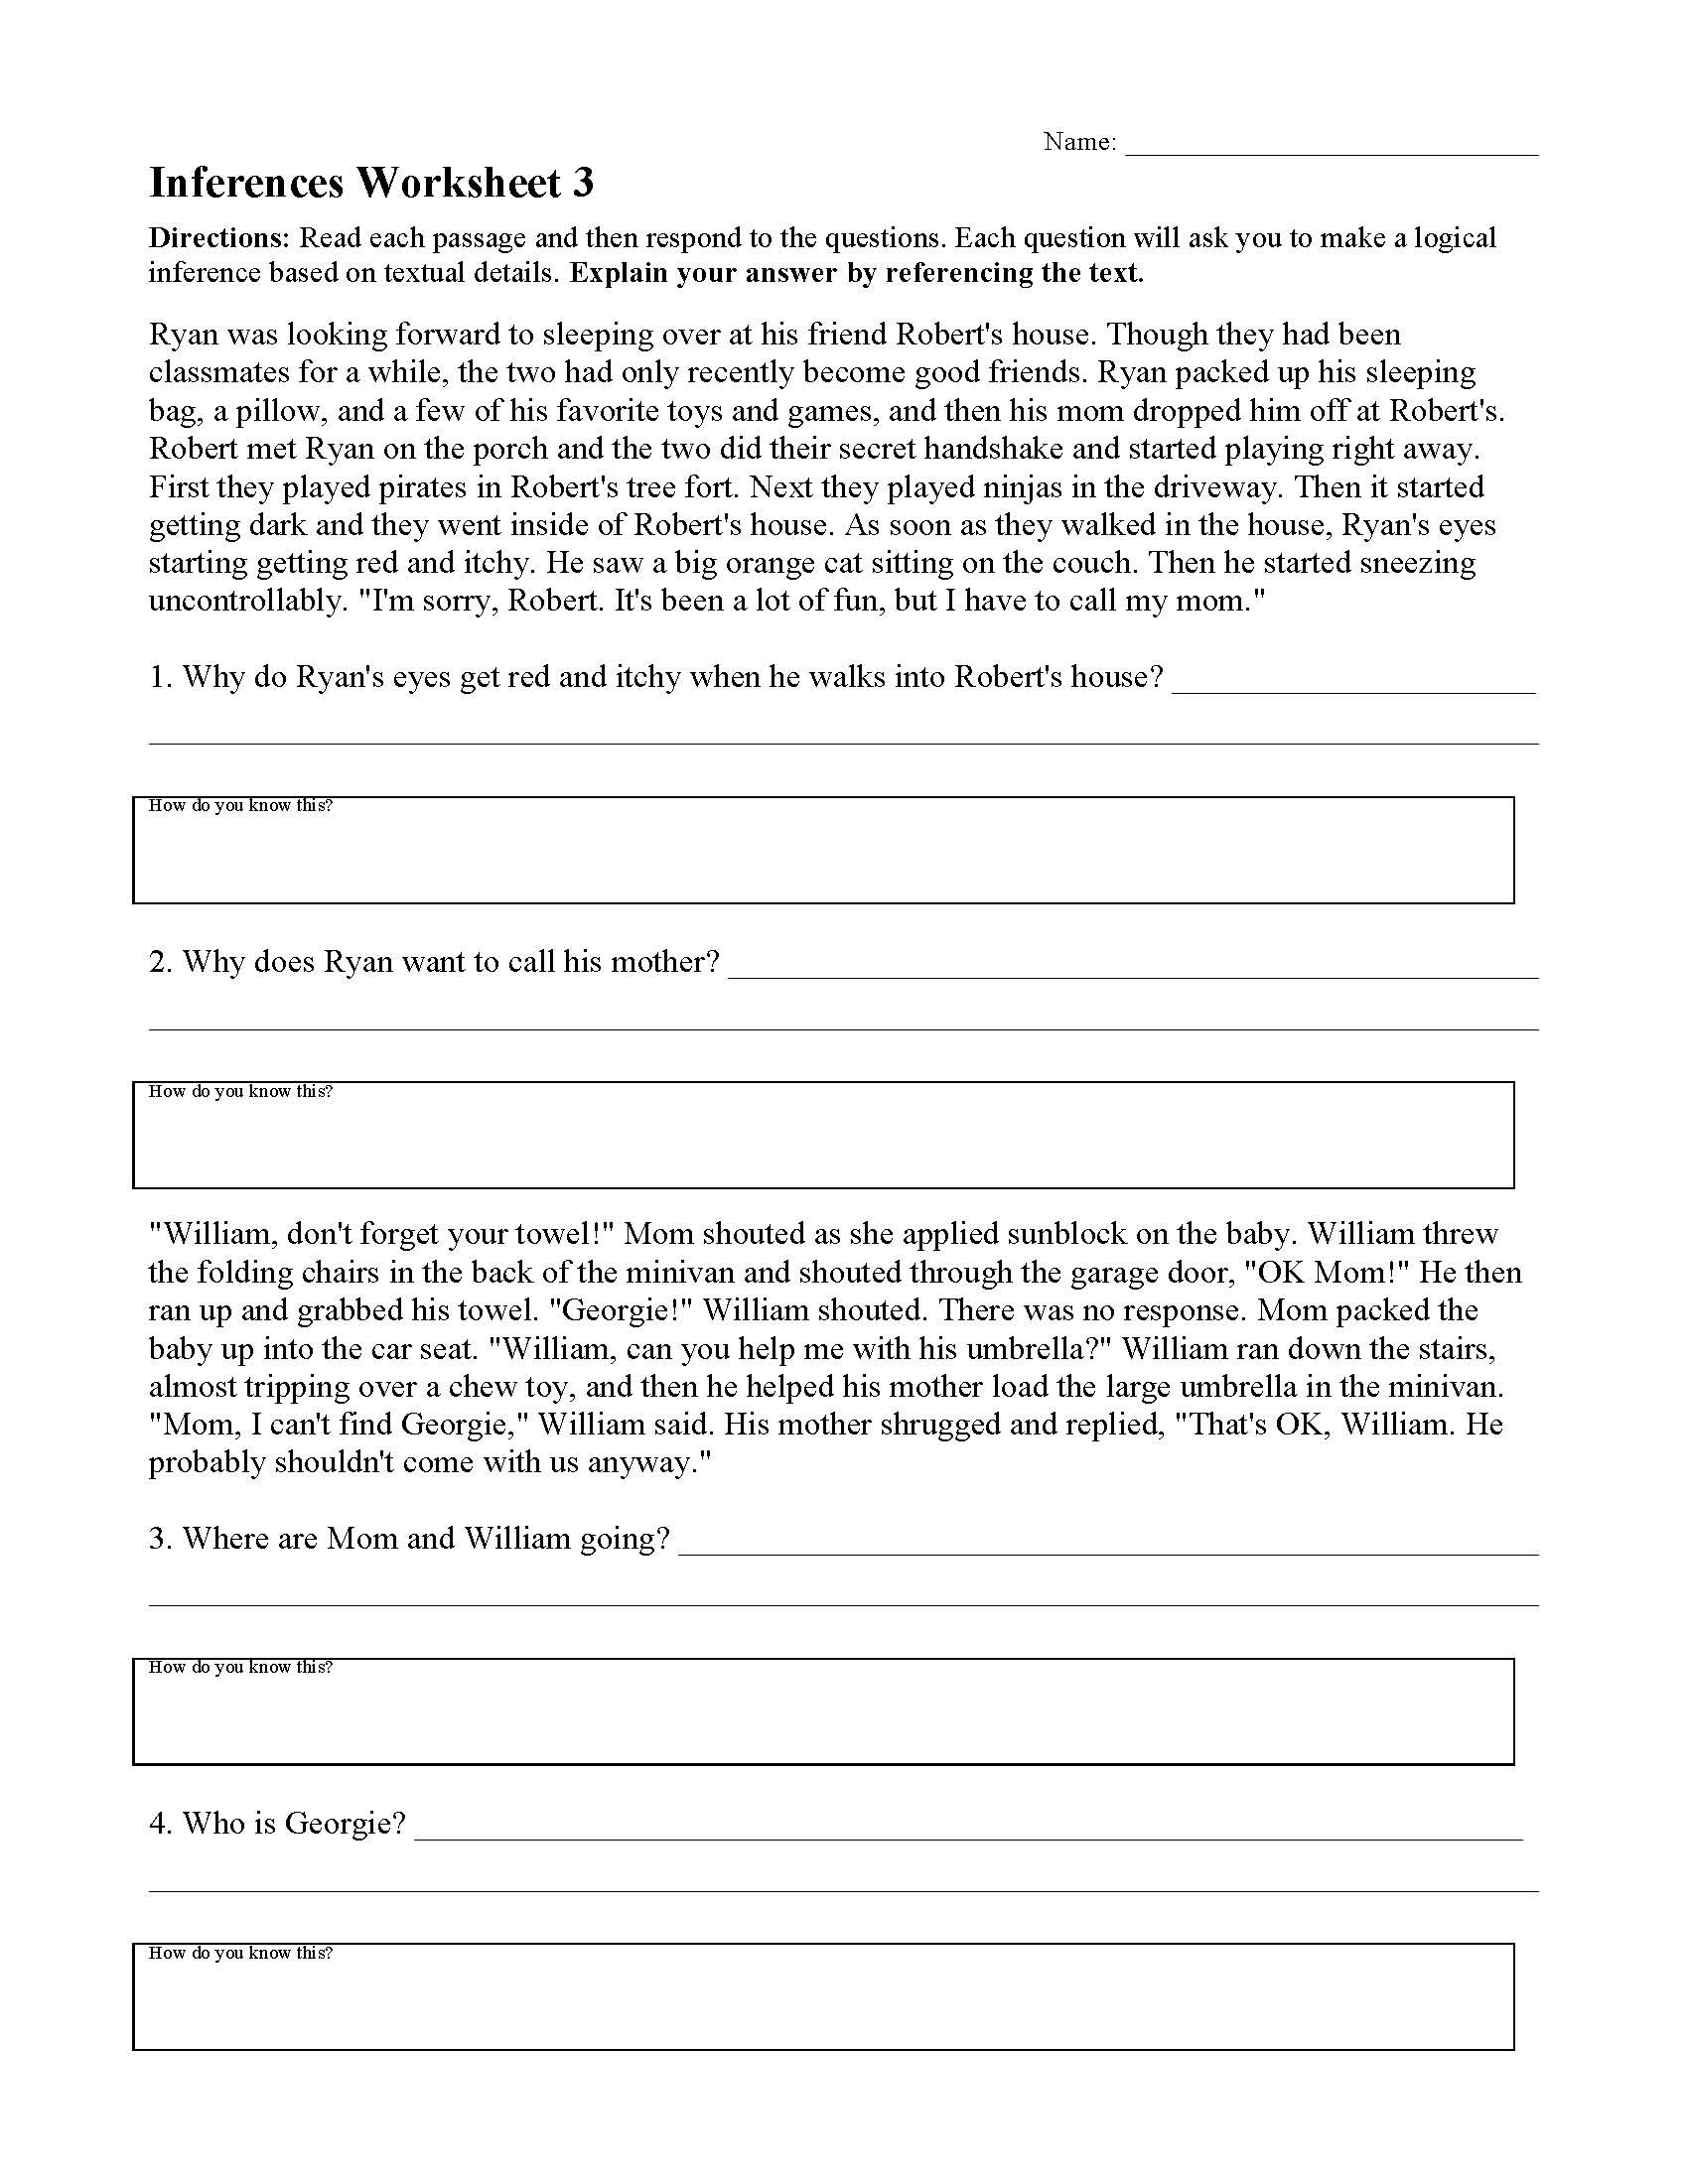 Inference Worksheets Grade 3 Inferences Worksheets